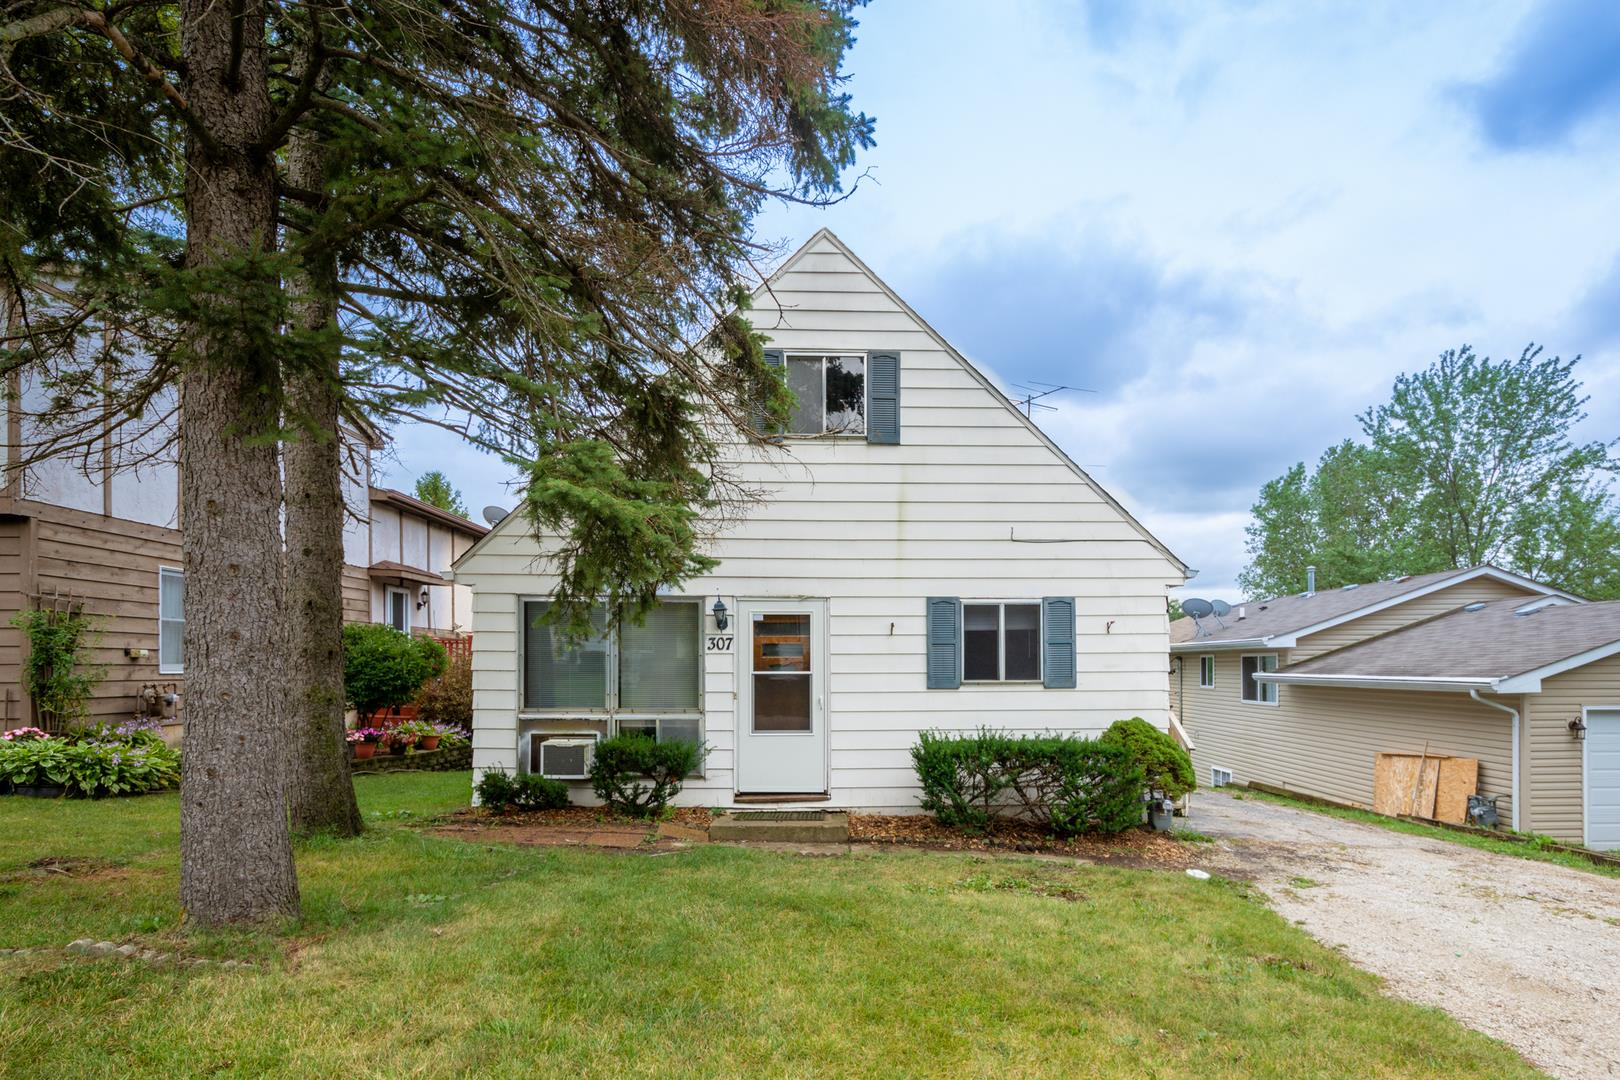 307 S ROSEDALE Court, Round Lake, IL 60073 - #: 10856817